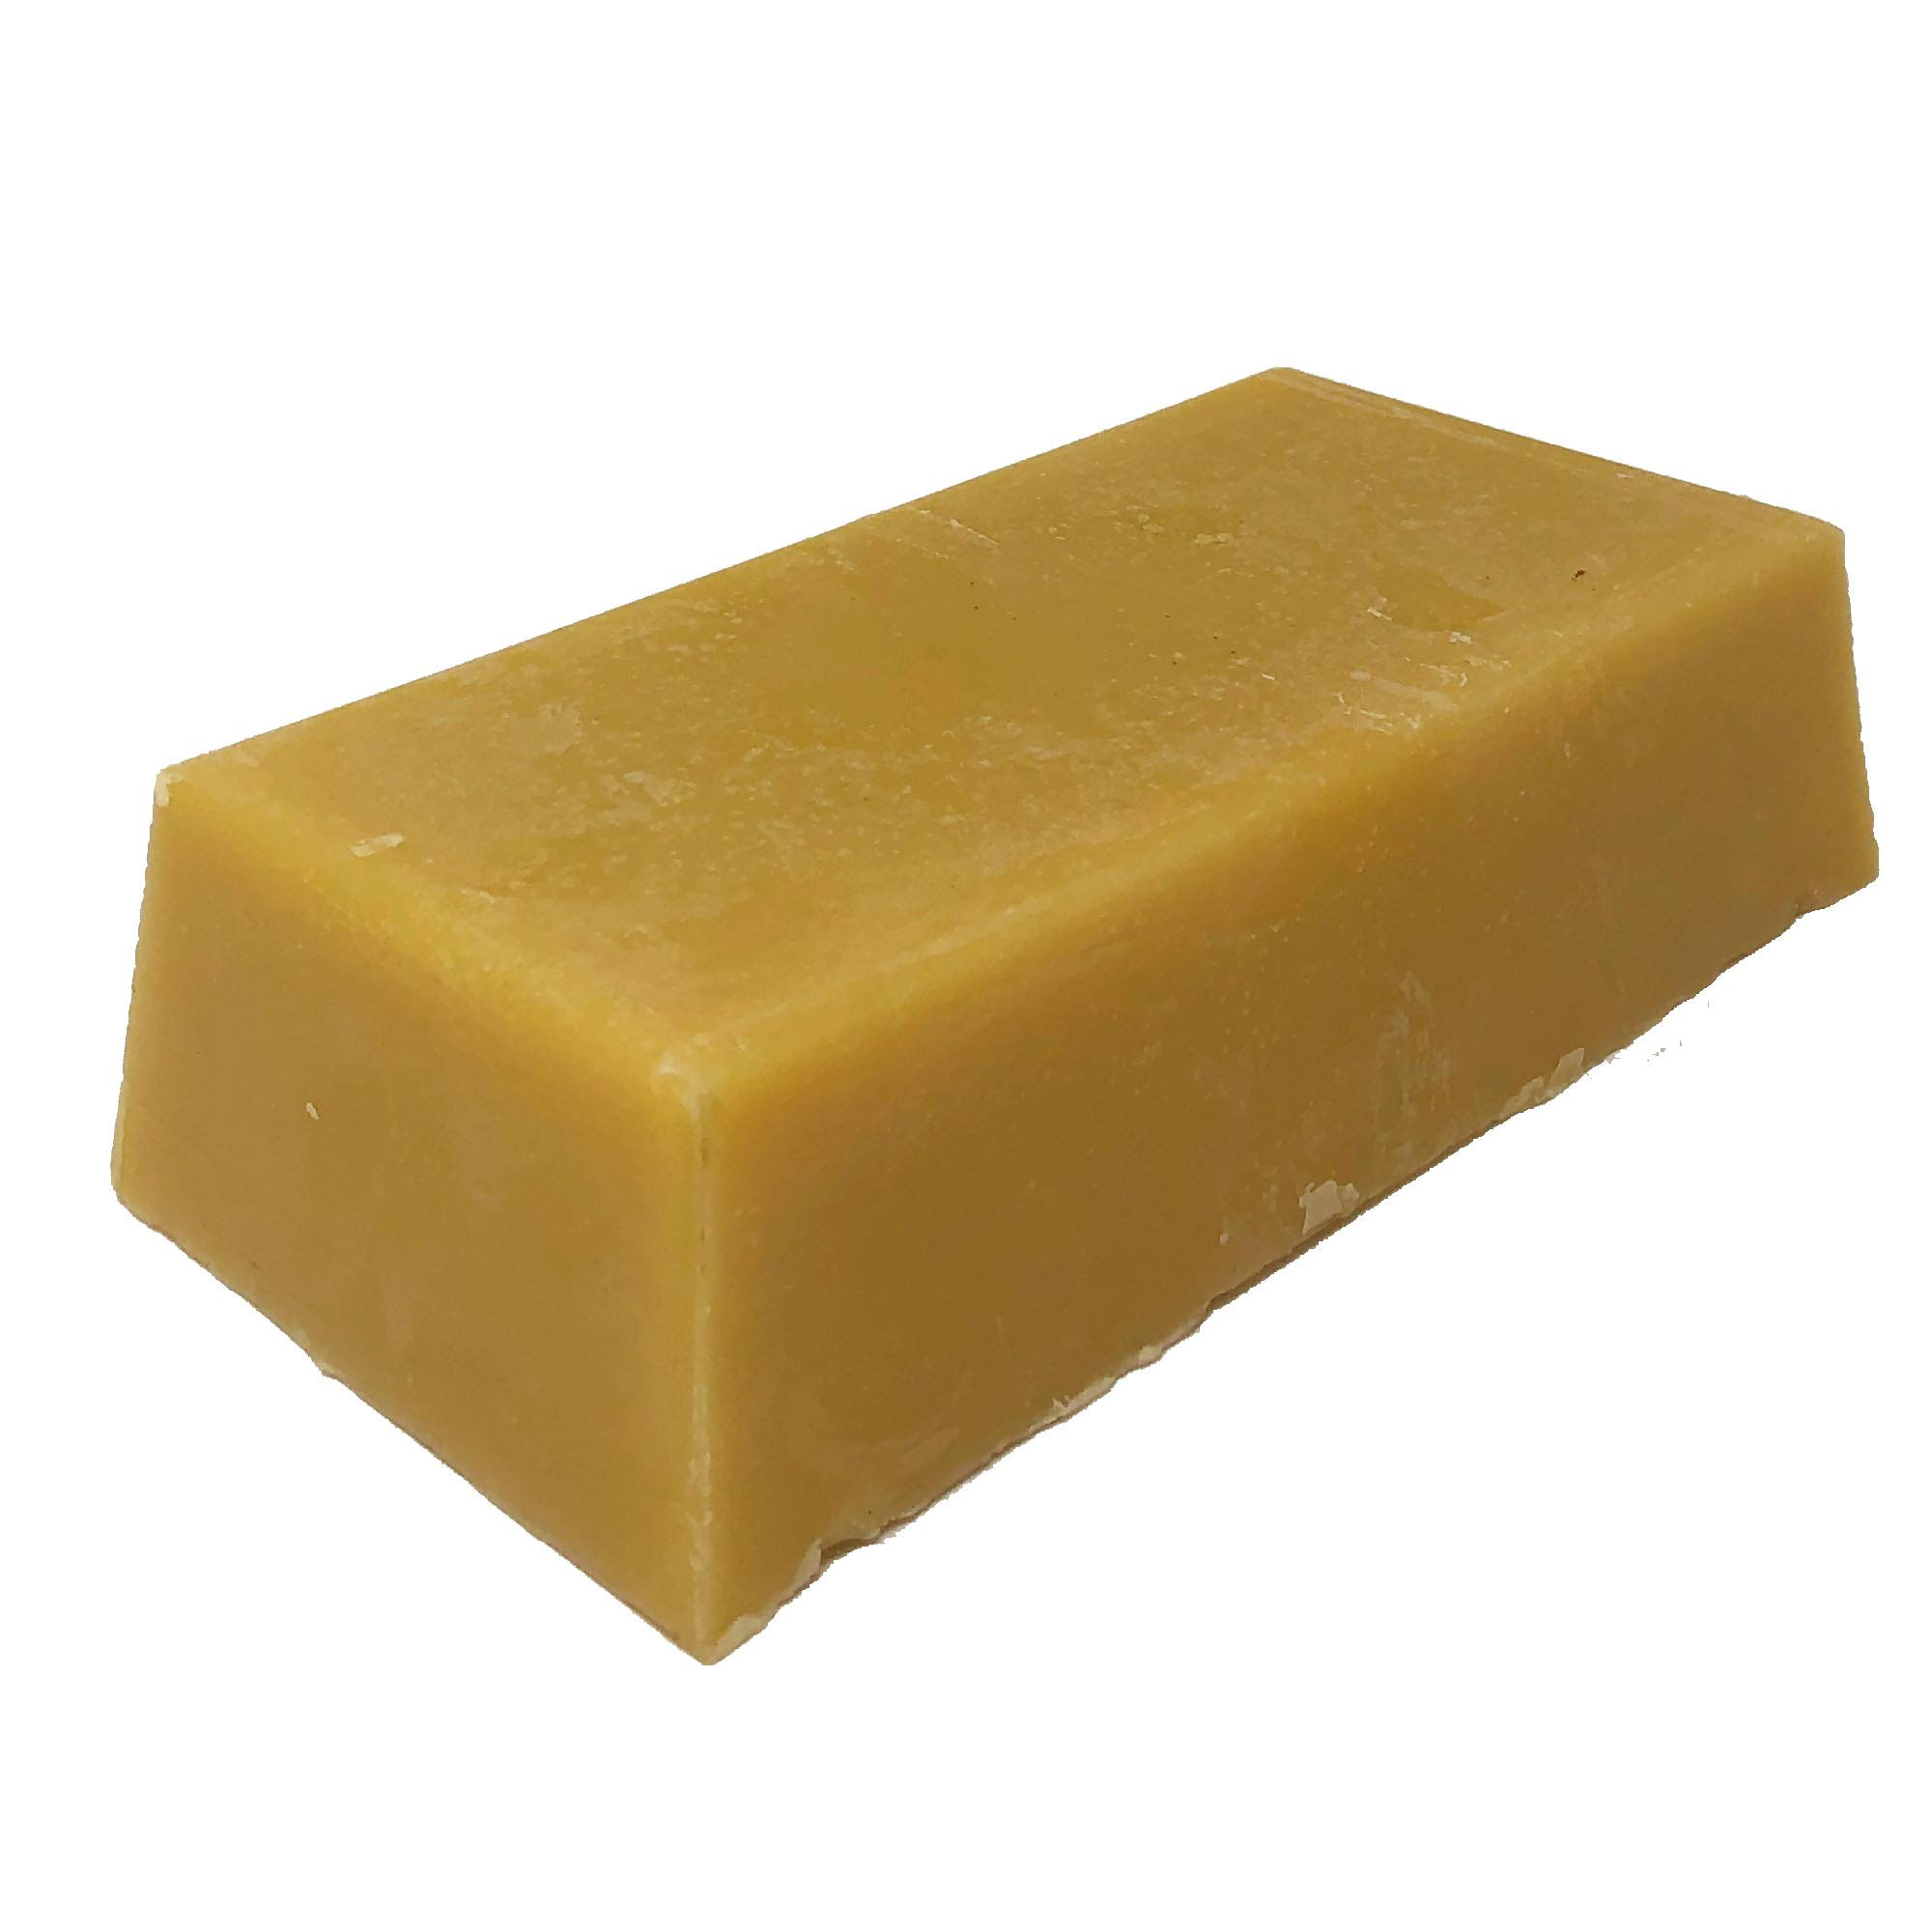 Pure Beeswax - 3 pounds